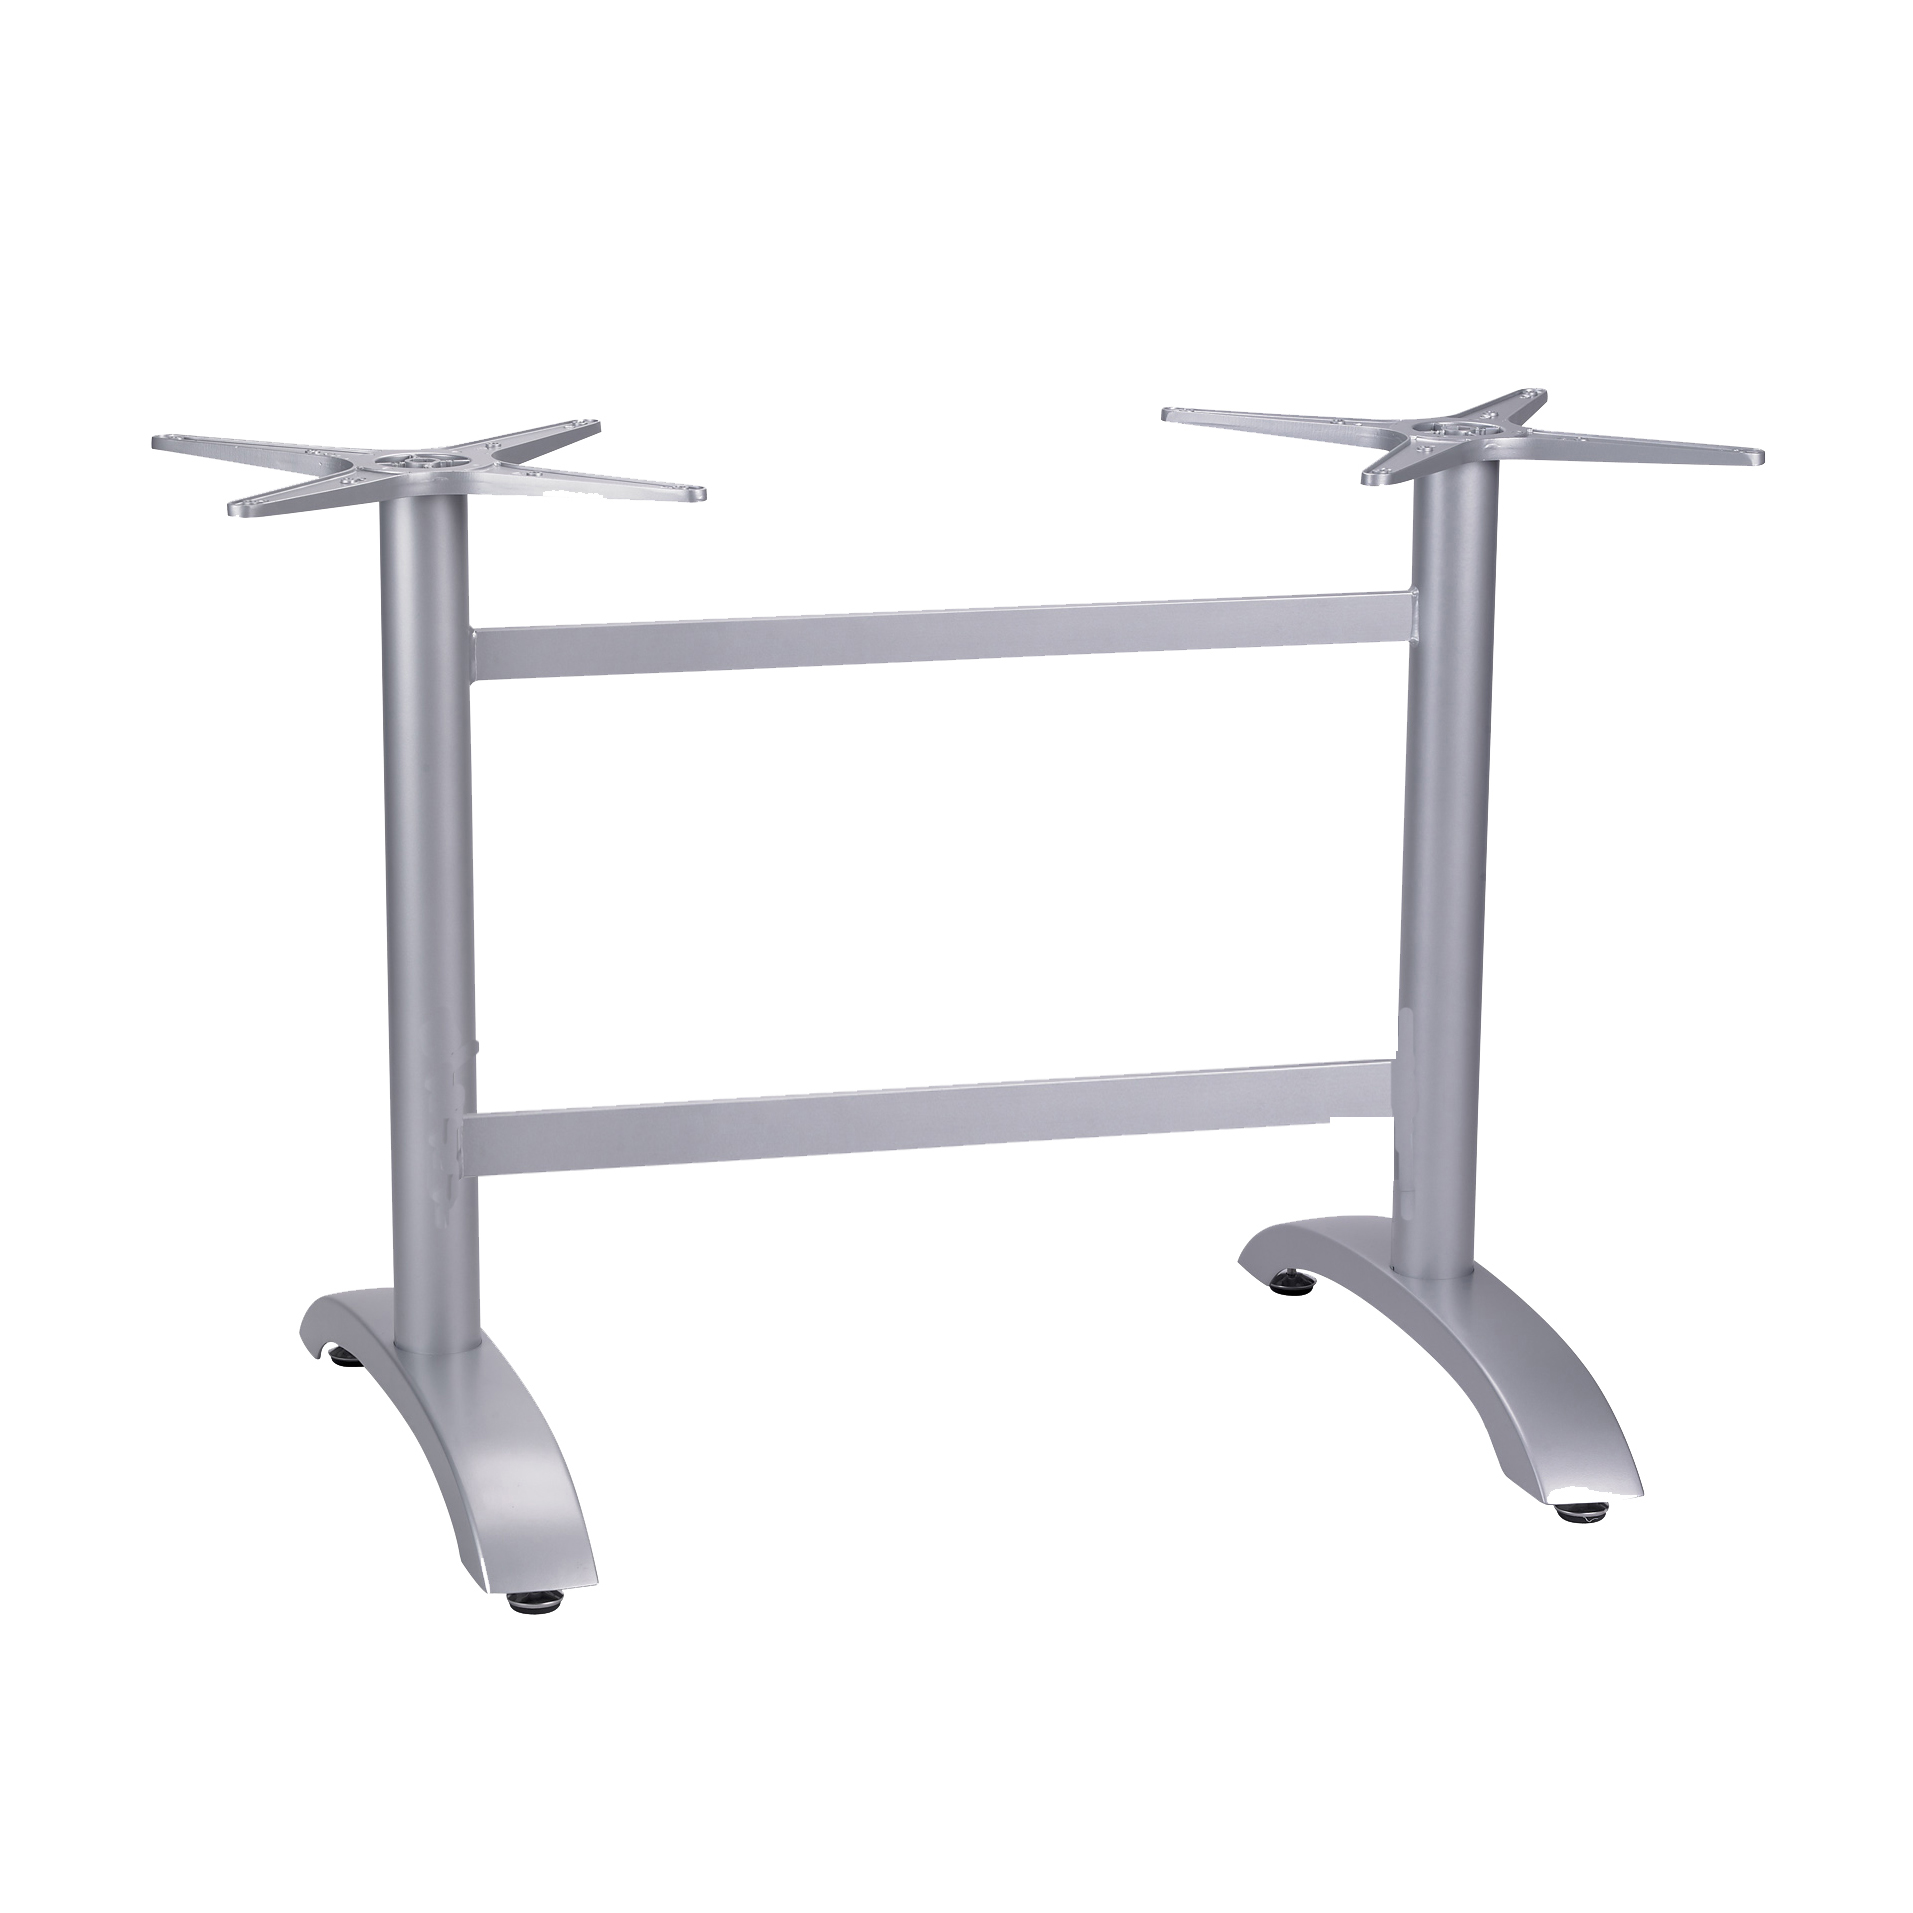 Grosfillex US750009 table base, metal